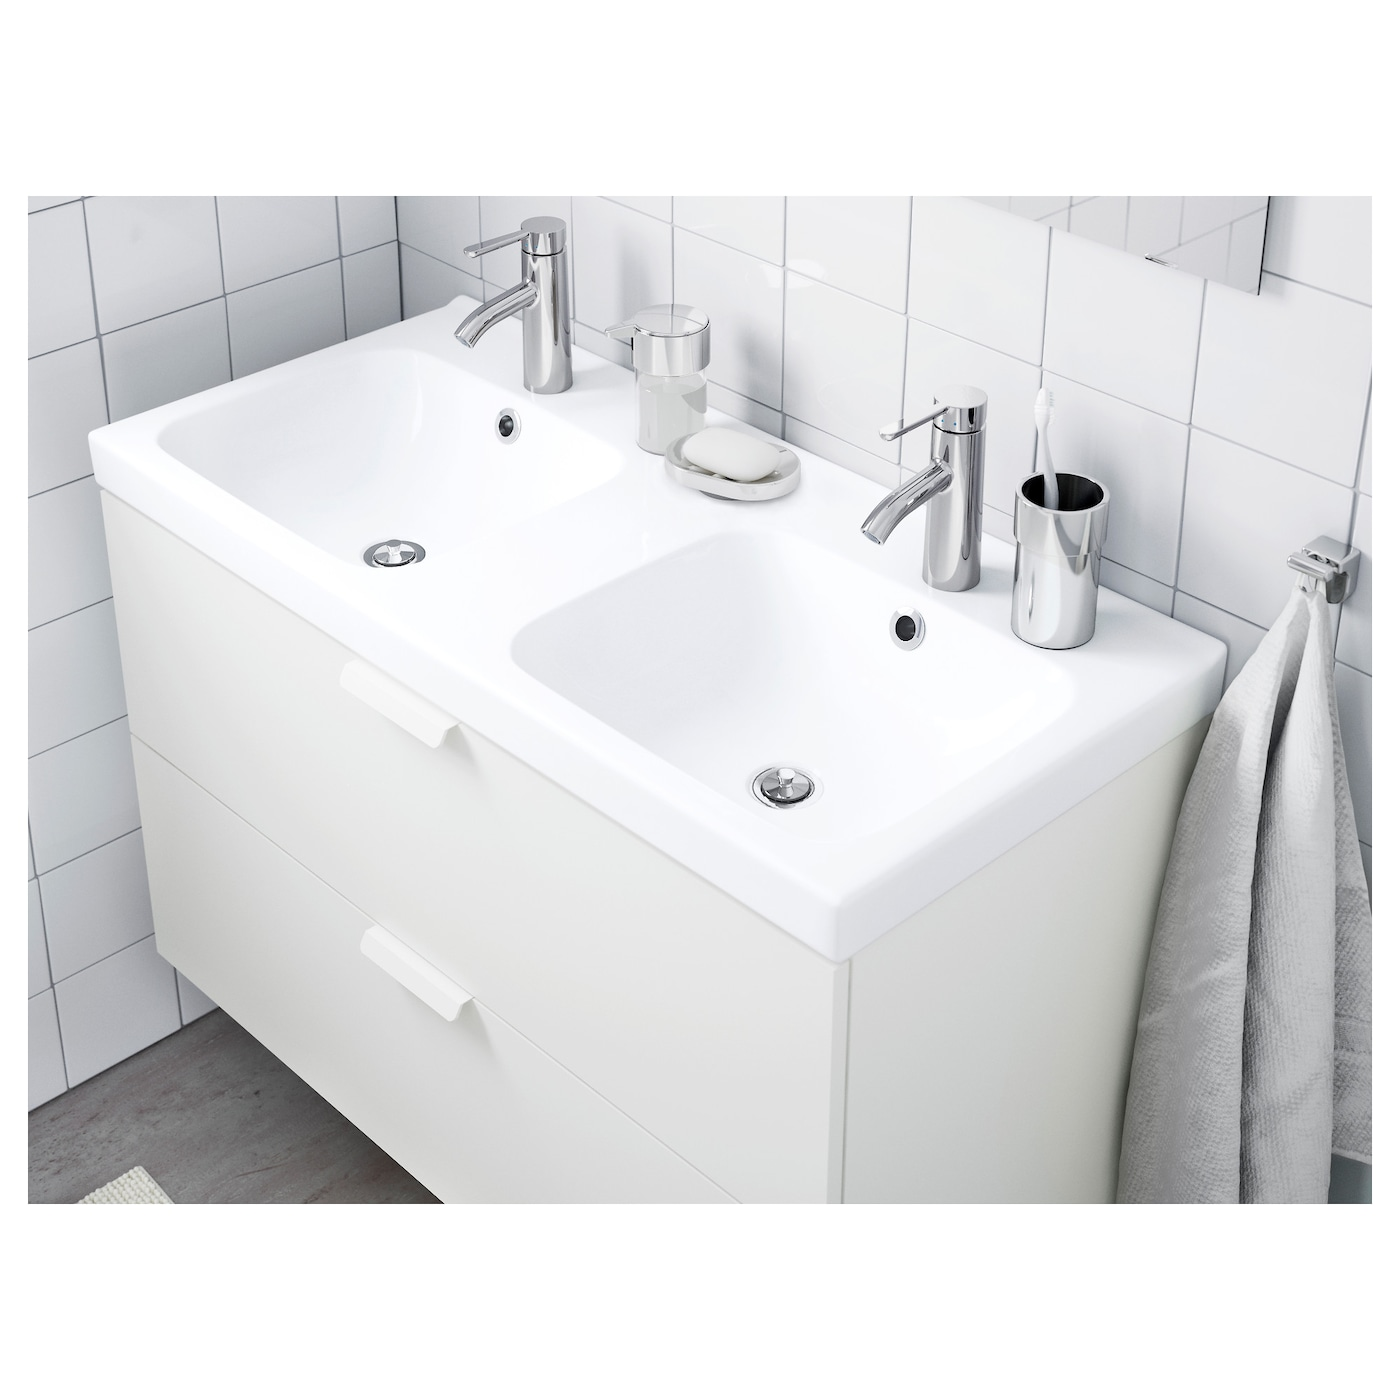 IKEA ODENSVIK double wash-basin 10 year guarantee. Read about the terms in the guarantee brochure.